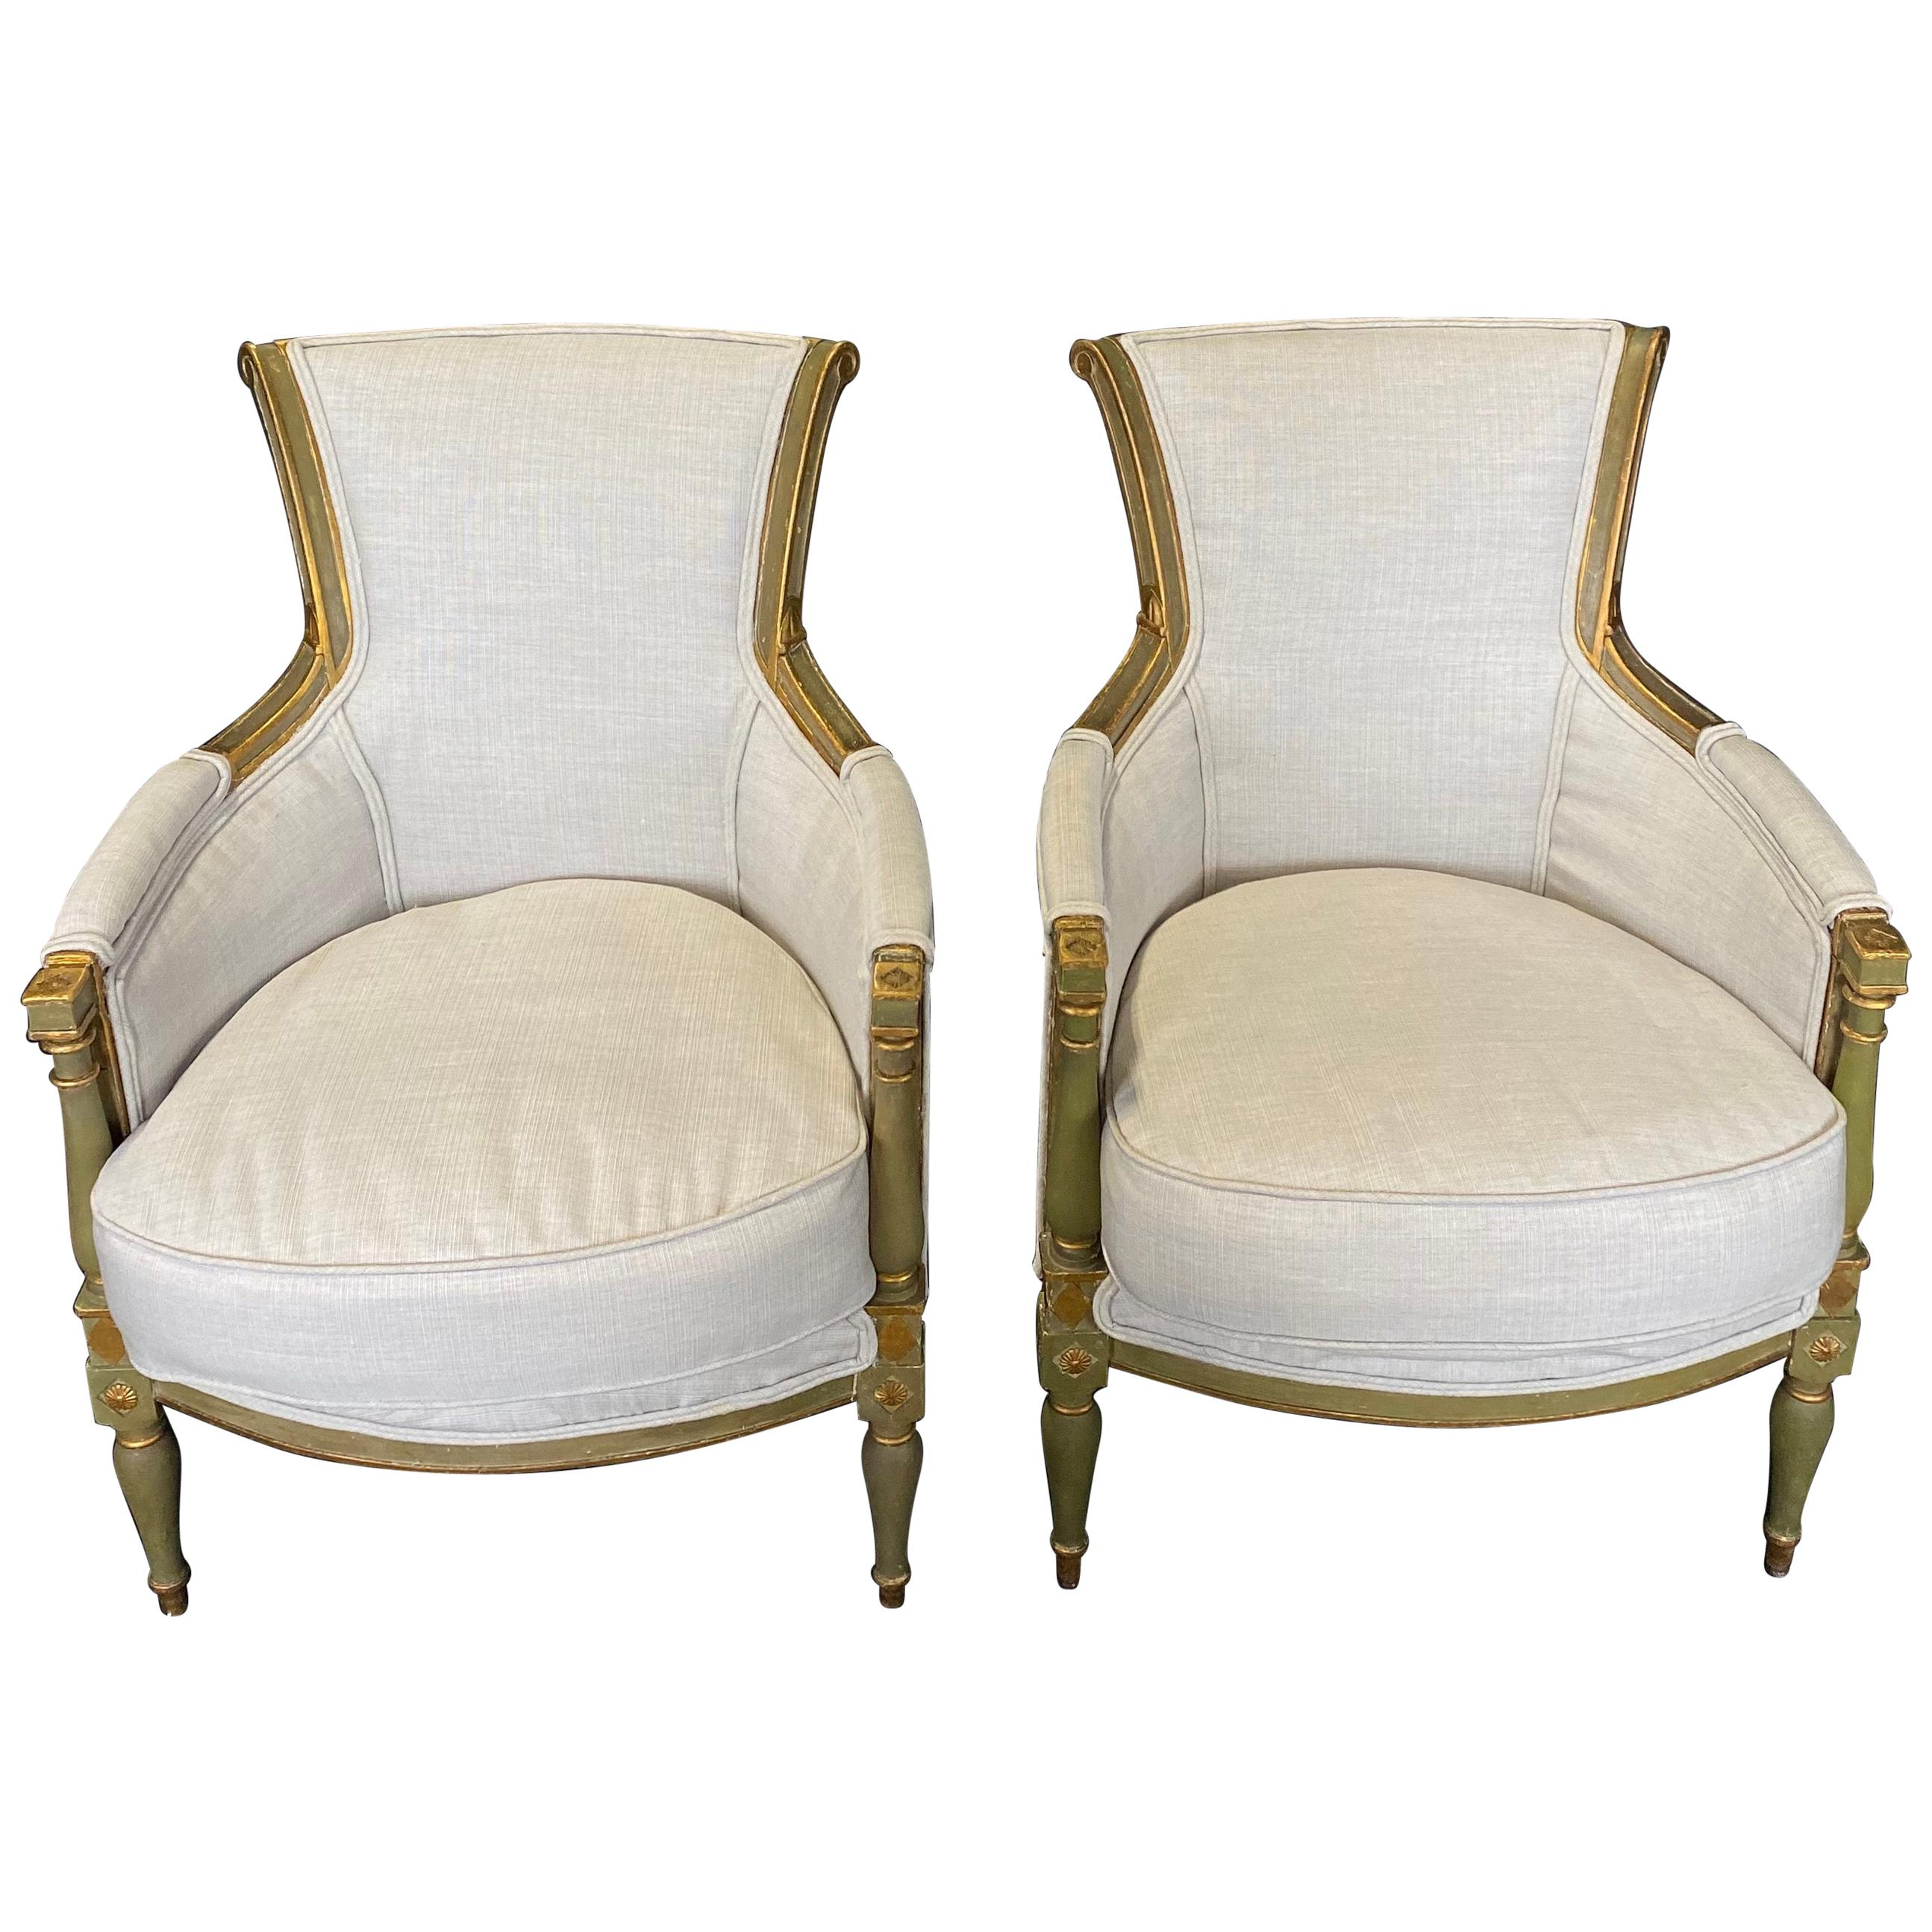 Pair of Delectable Early 19th Century Painted Neoclassical Armchair Bergères